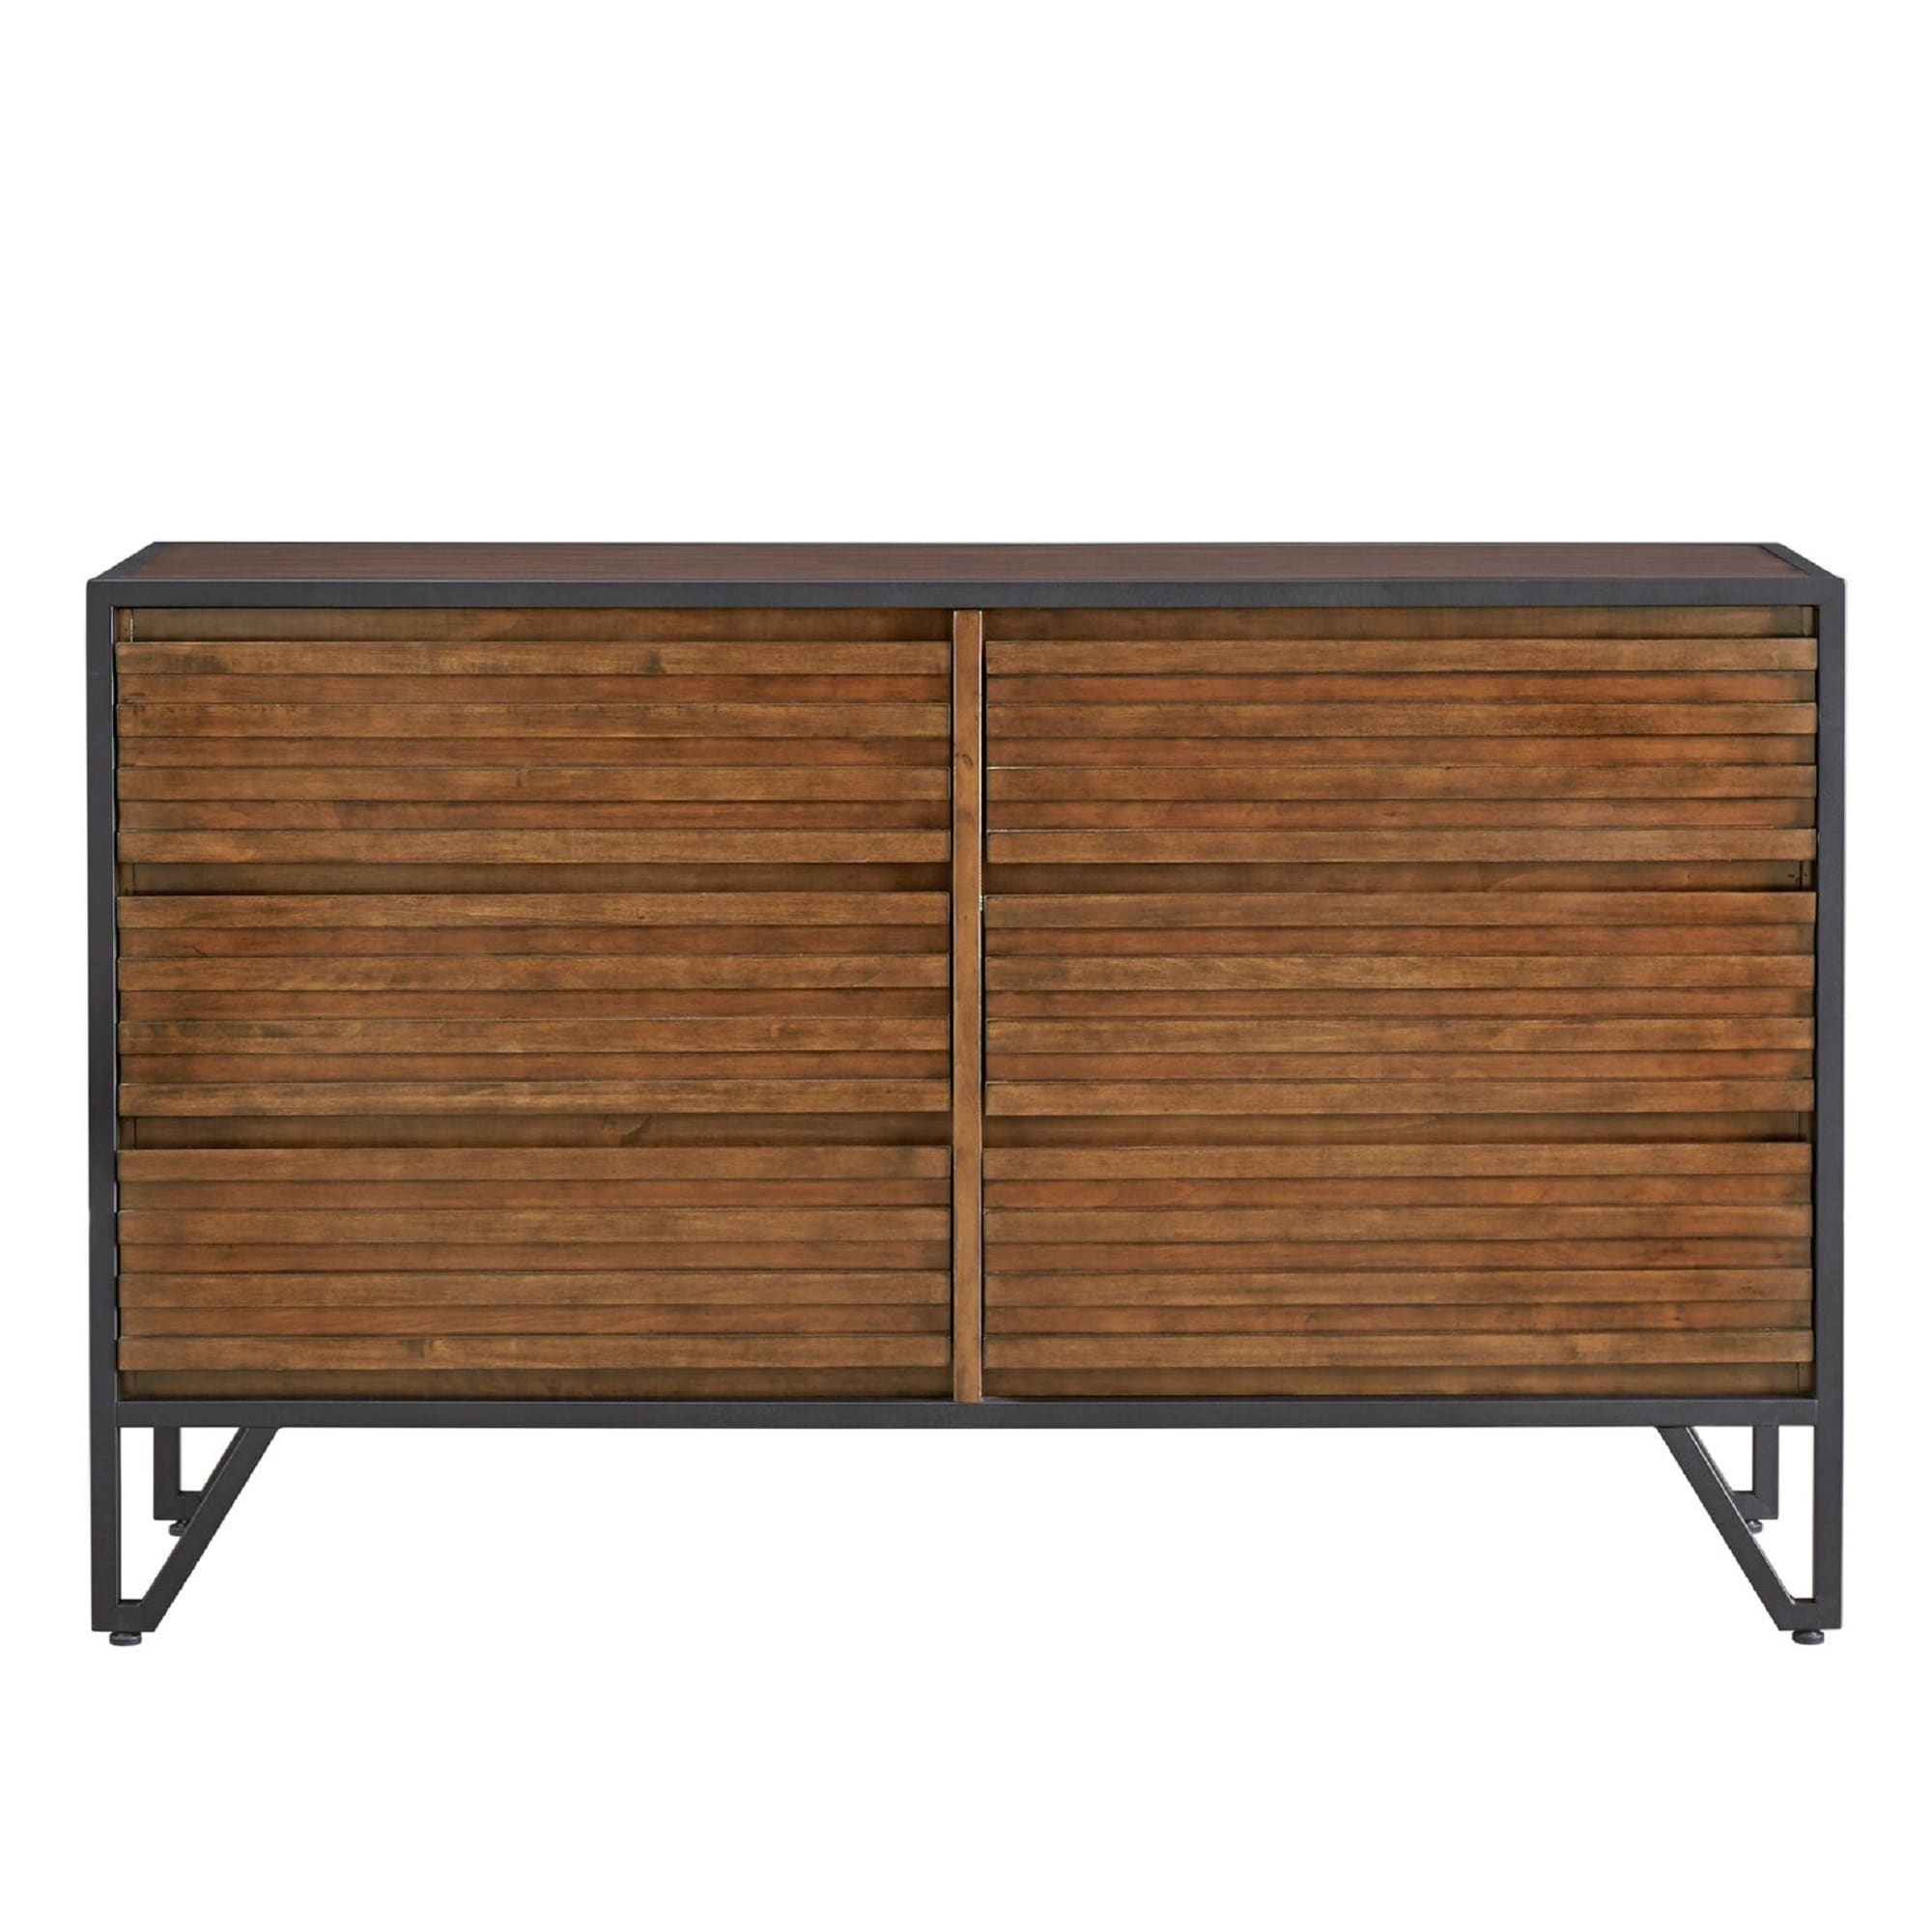 Chico Stacked Cherry Wood and Metal 6-Drawer Dresser and Mirror by iNSPIRE Q  Modern - Free Shipping Today - Overstock.com - 23429059